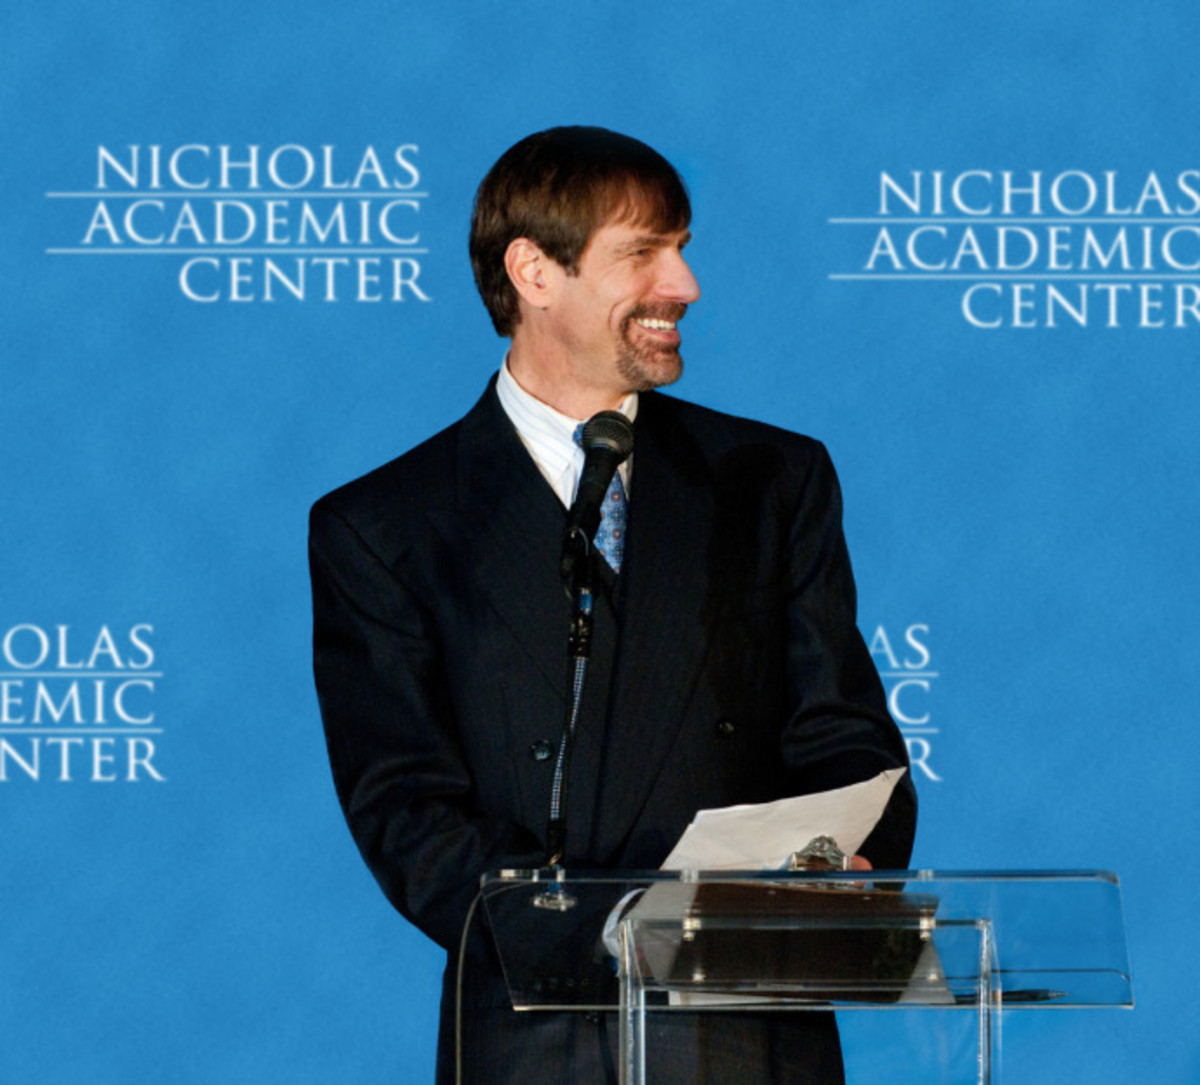 Henry Nicholas addressing Nicholas Academic Center graduates.